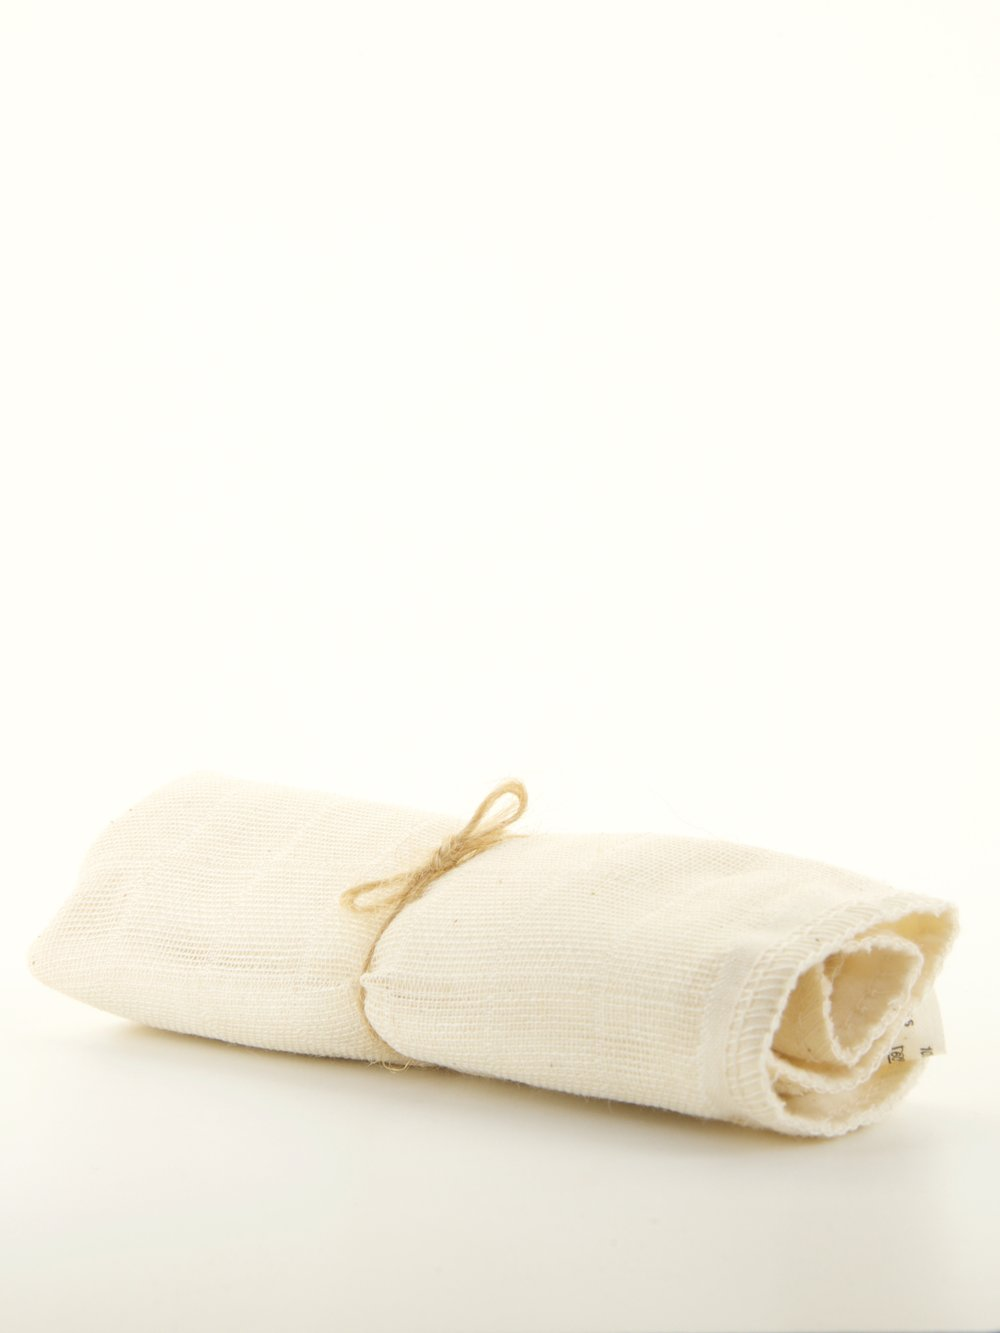 Greenfibres Two Sided Organic Cotton Face Cloth £3.10